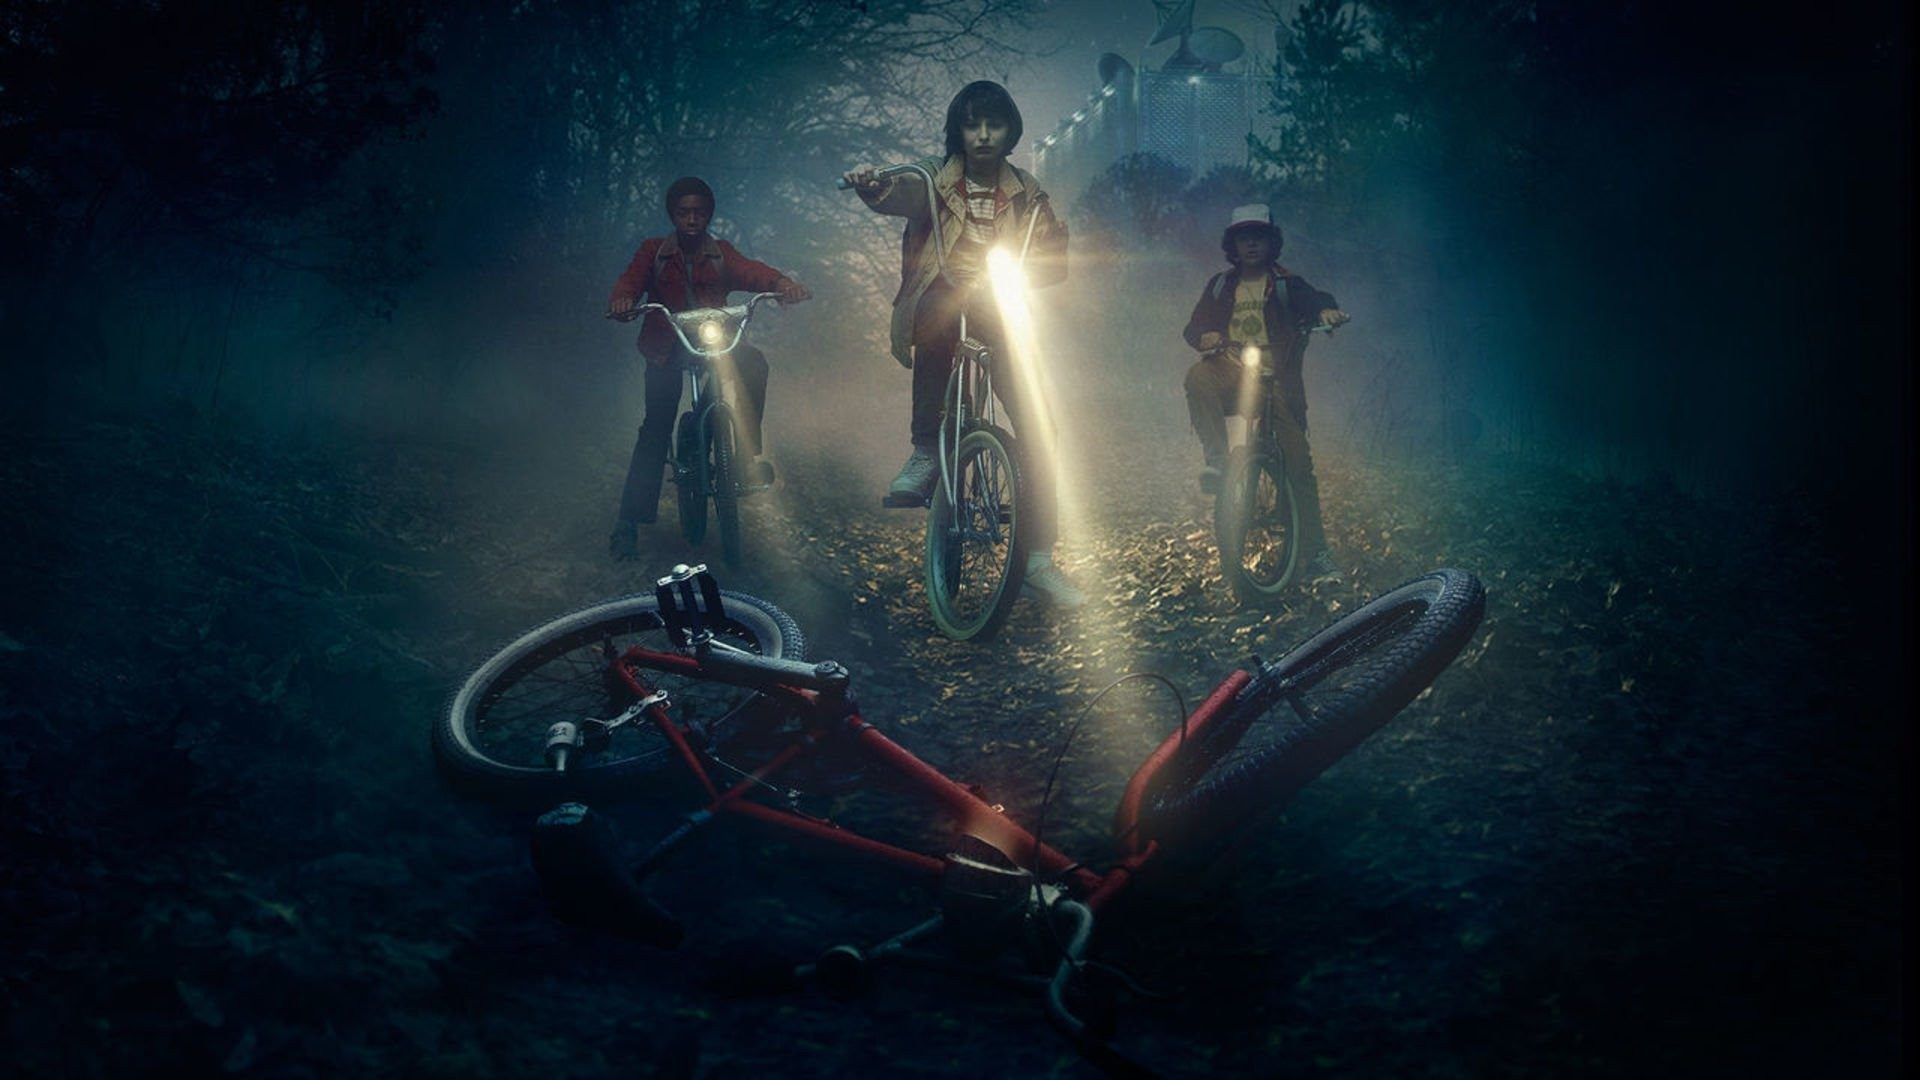 Best-Stranger-Things-Wallpapers-Movie